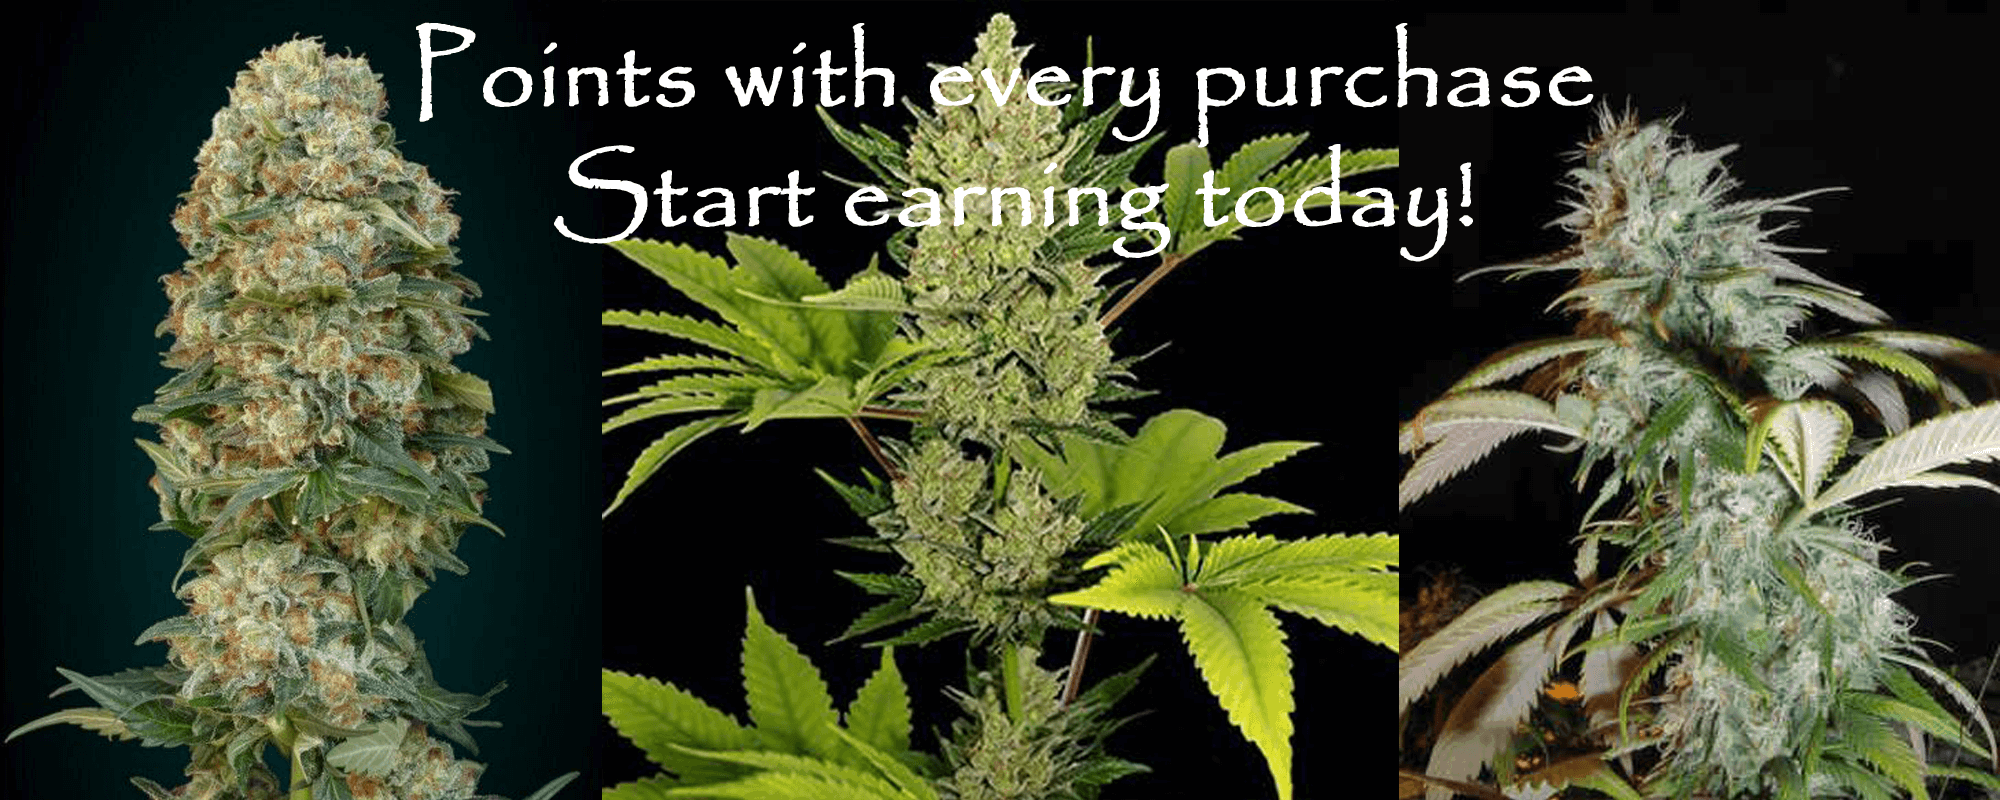 Coffee Shop Seeds Coupon Code discounts promos save on cannabis online Store5